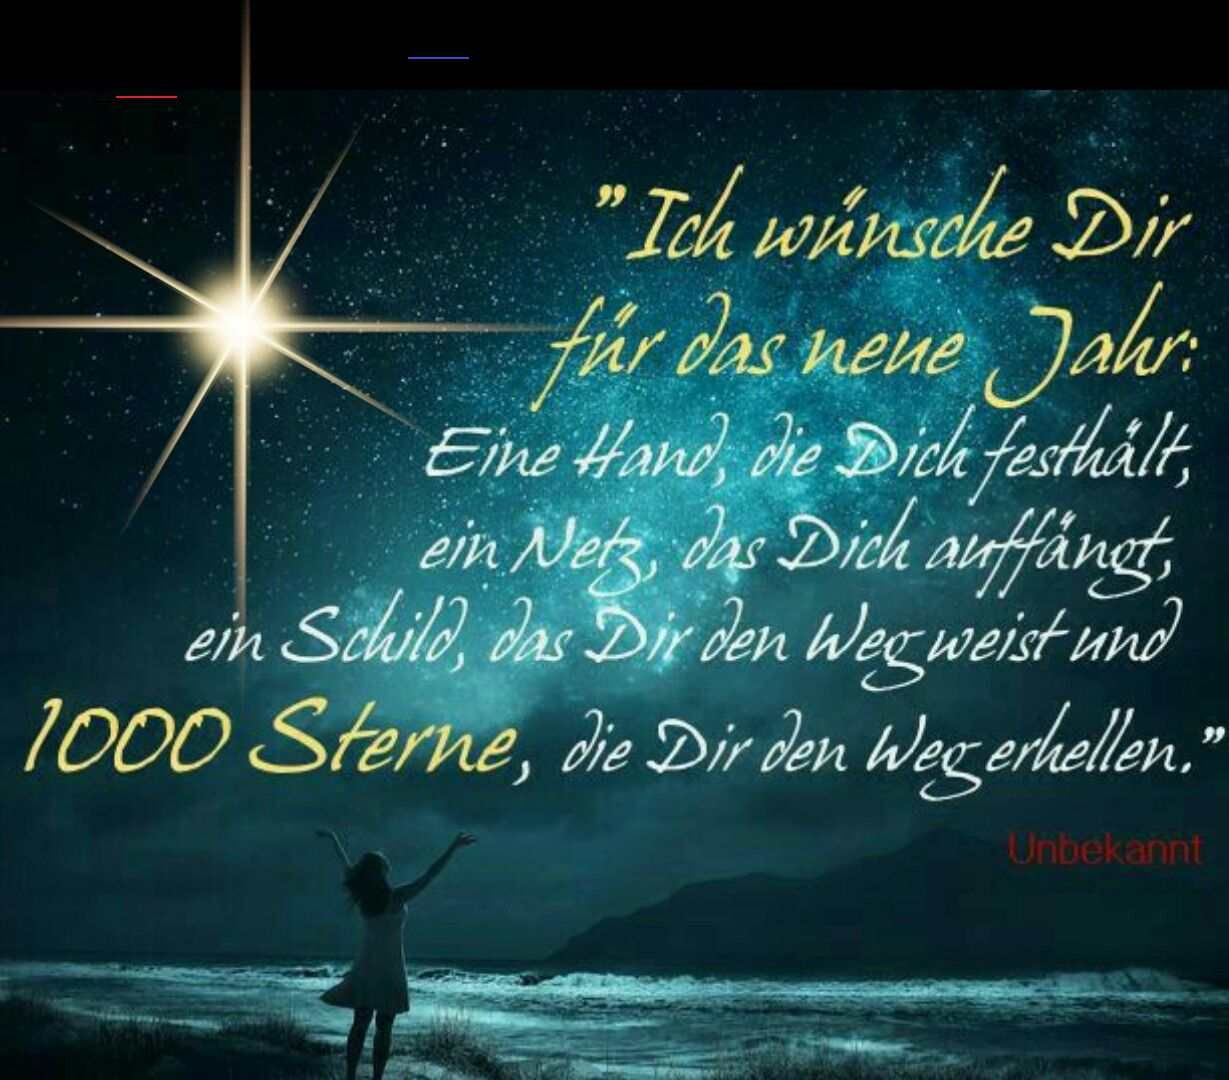 Weihnachtswunsche In 2020 About Me Blog Famous Last Words Happy New Year